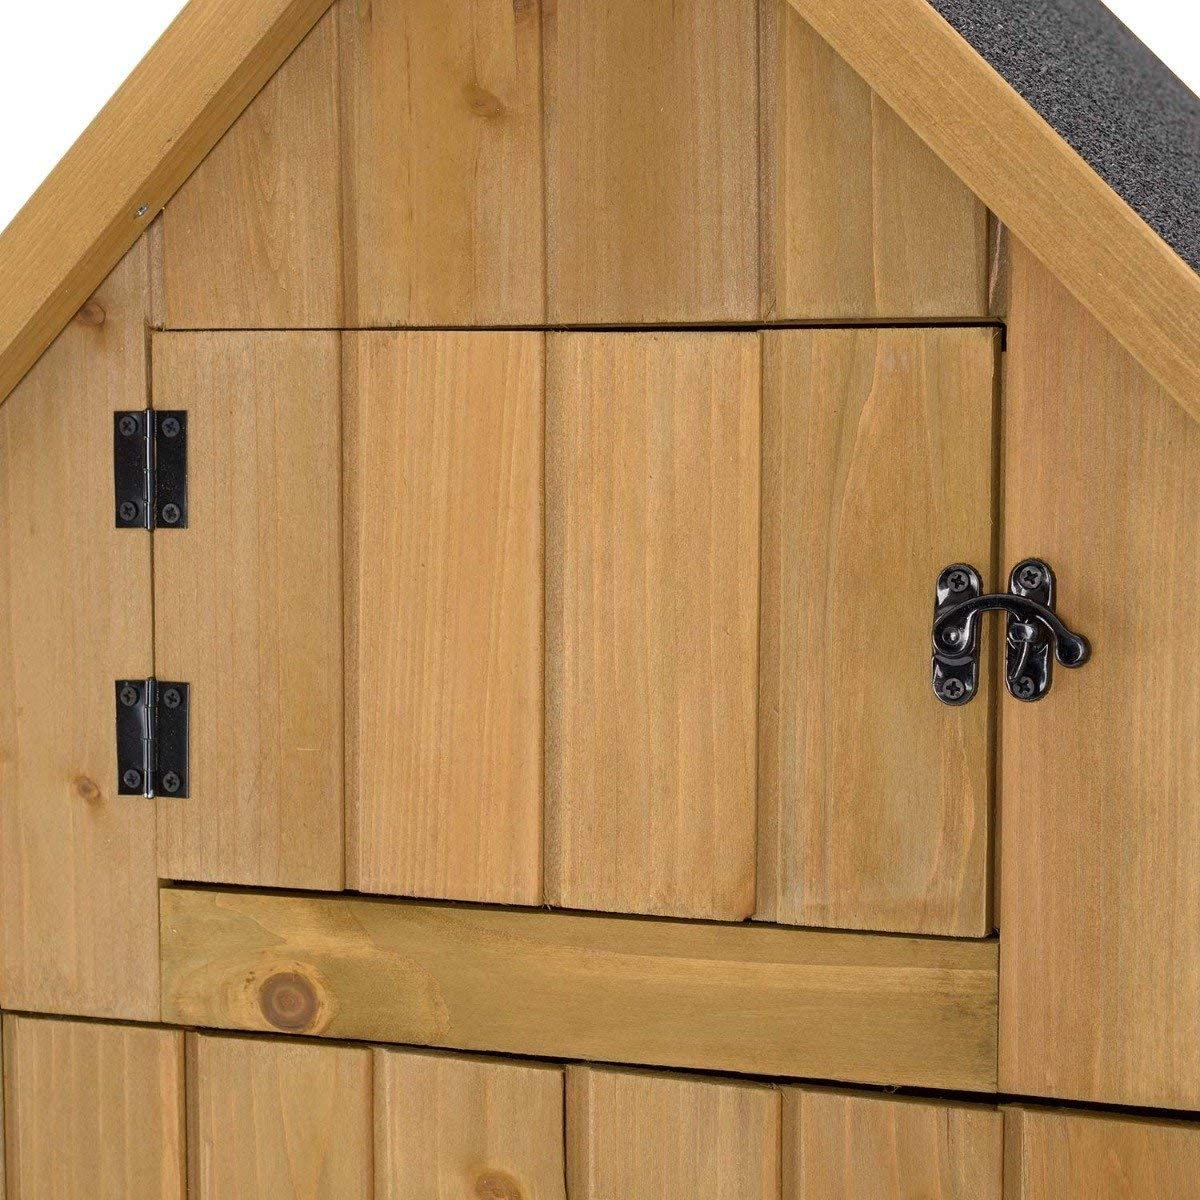 Compact Utility Sentry Unit CHRISTOW Small Garden Shed 6ft Shelves Roof Hatch Lockable Door Slope Roof Tall Slim Wooden Outdoor Storage Shed